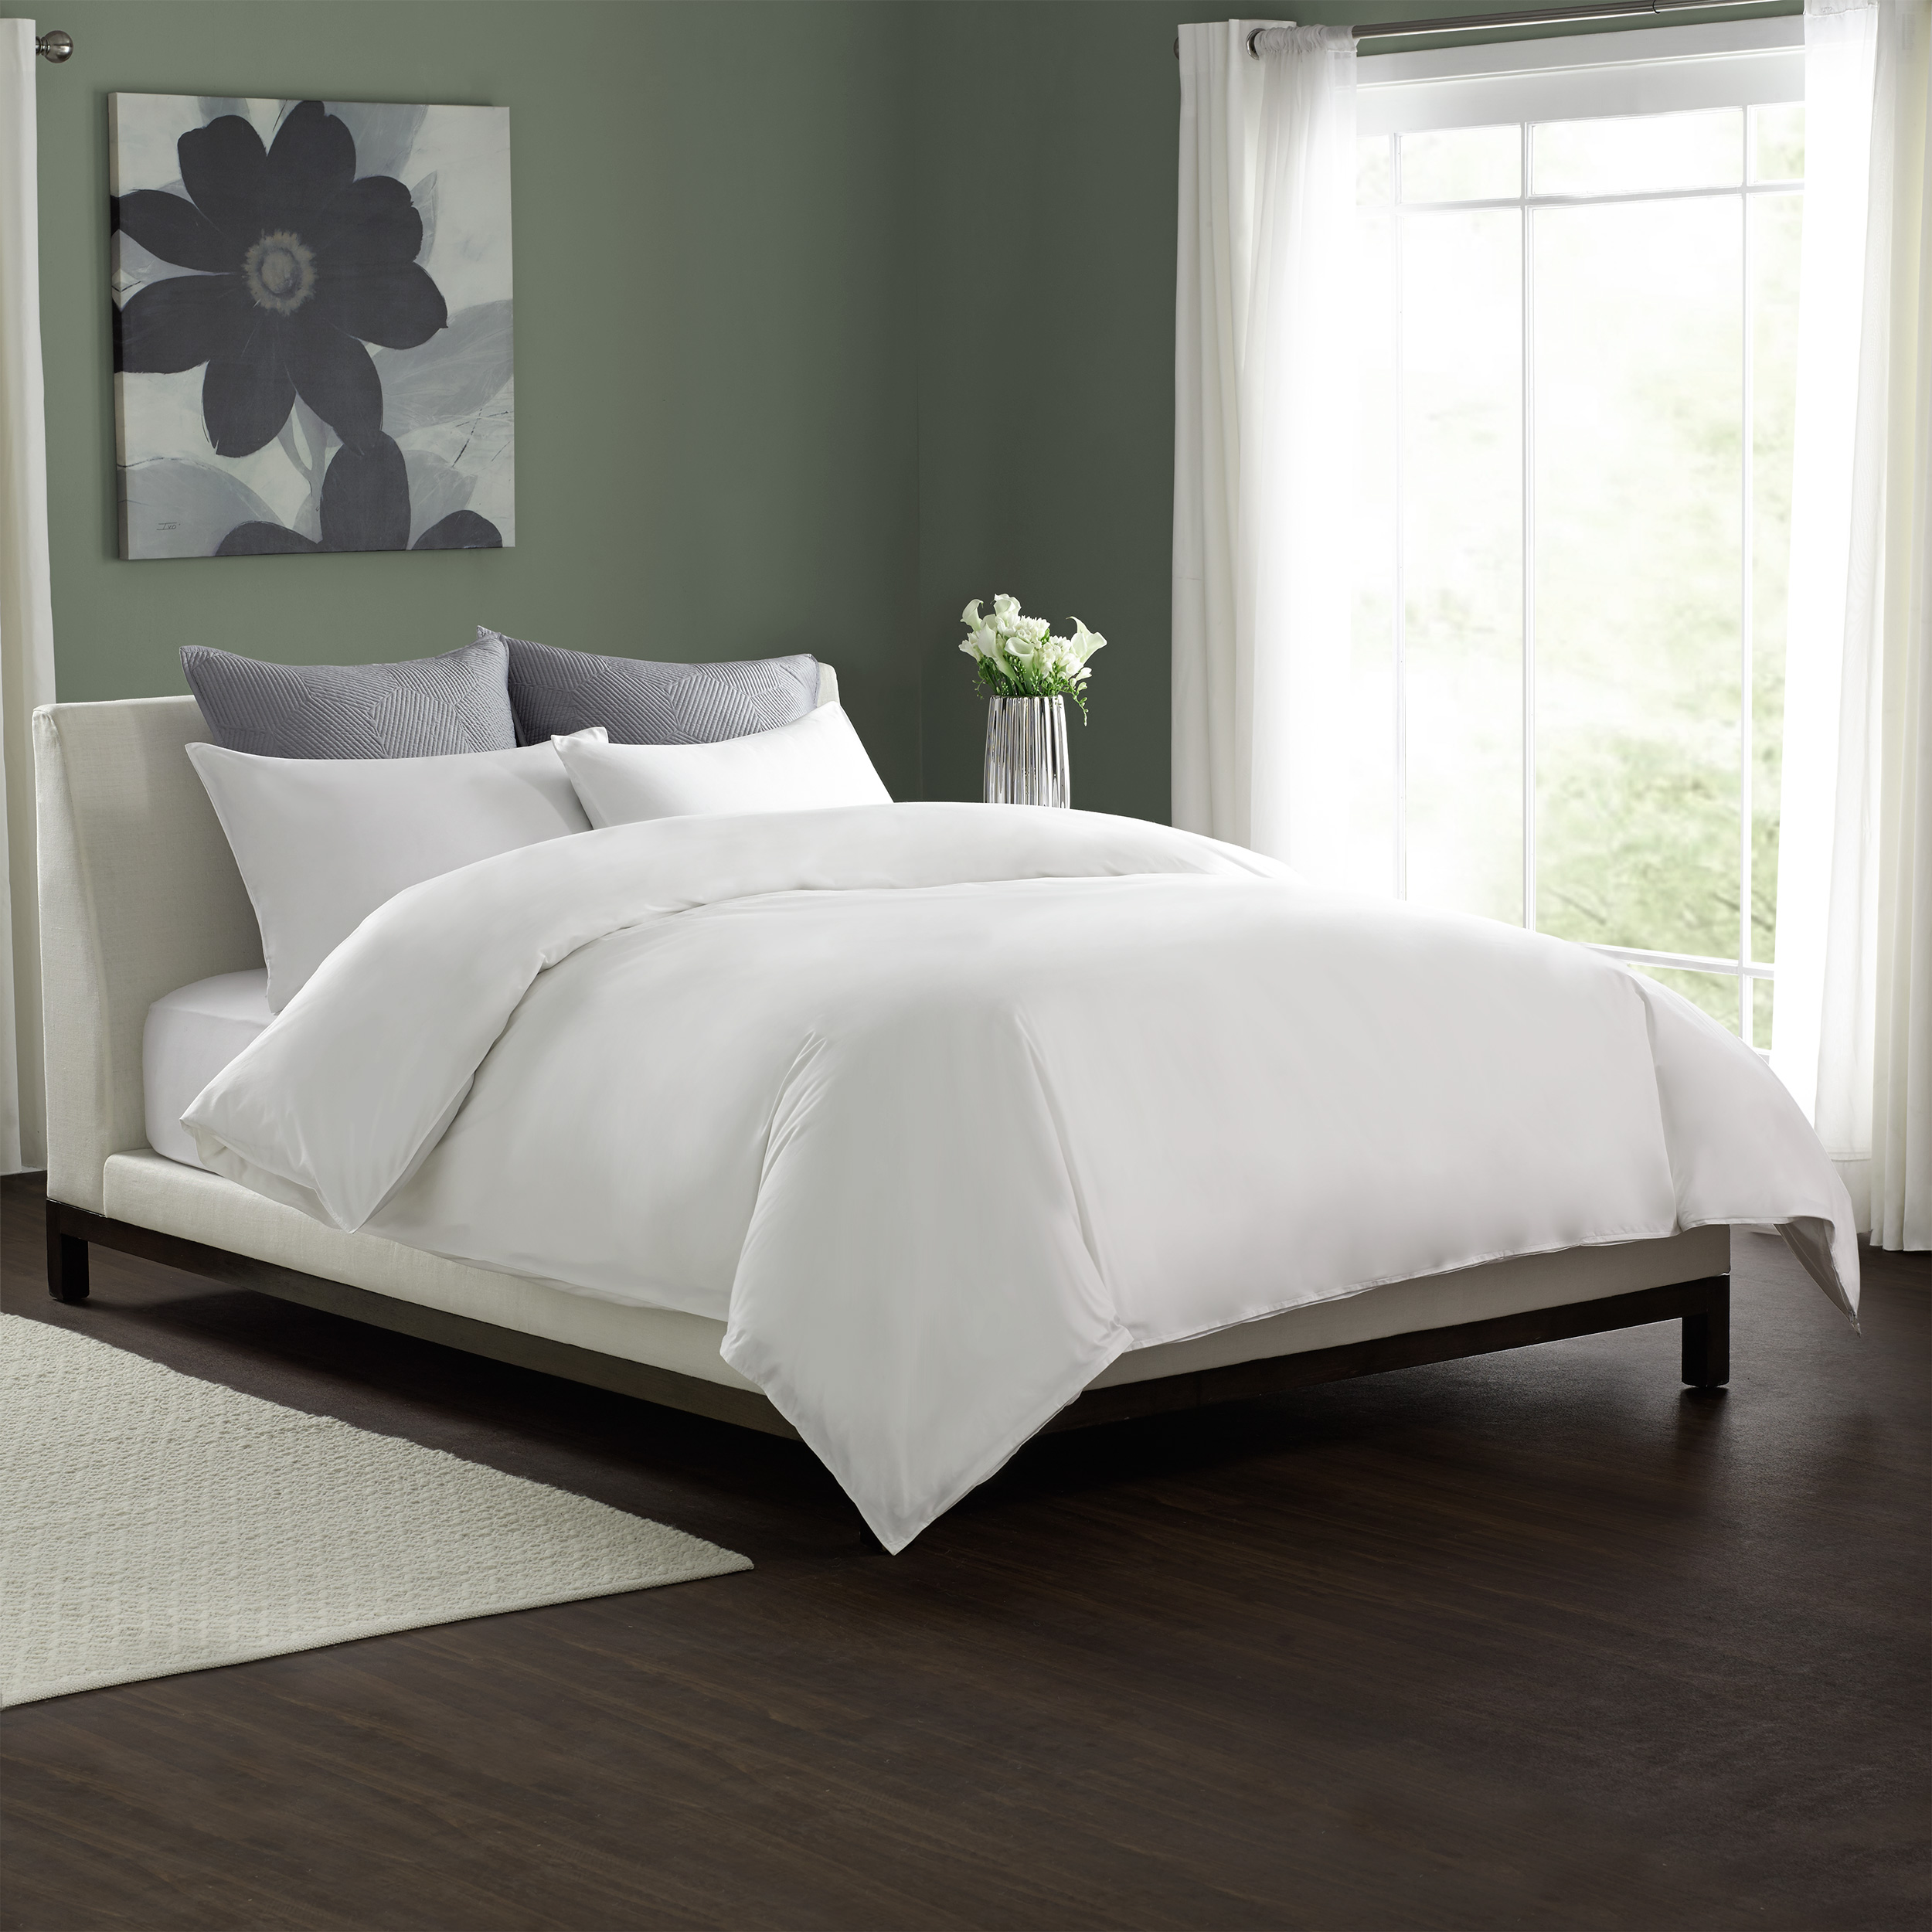 Pacific Coast® Online Bedding Stores Duvets